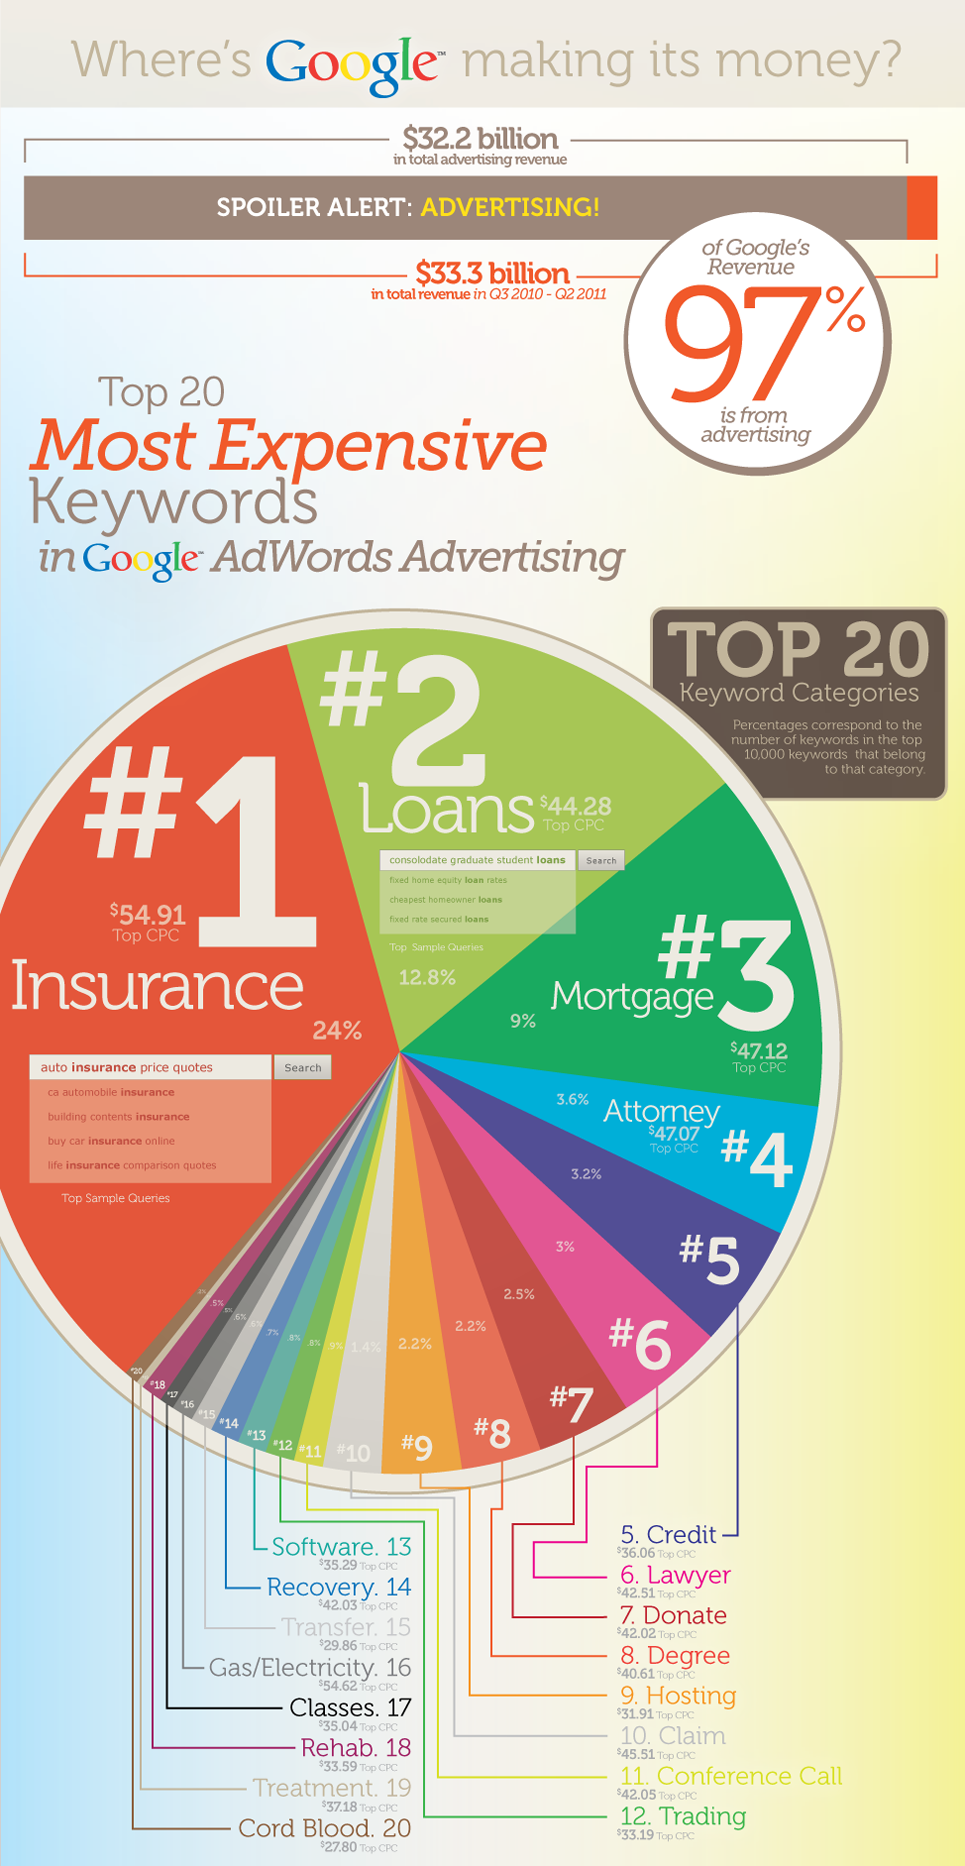 Top 20 Highest Cost Per Click Keywords Infographic